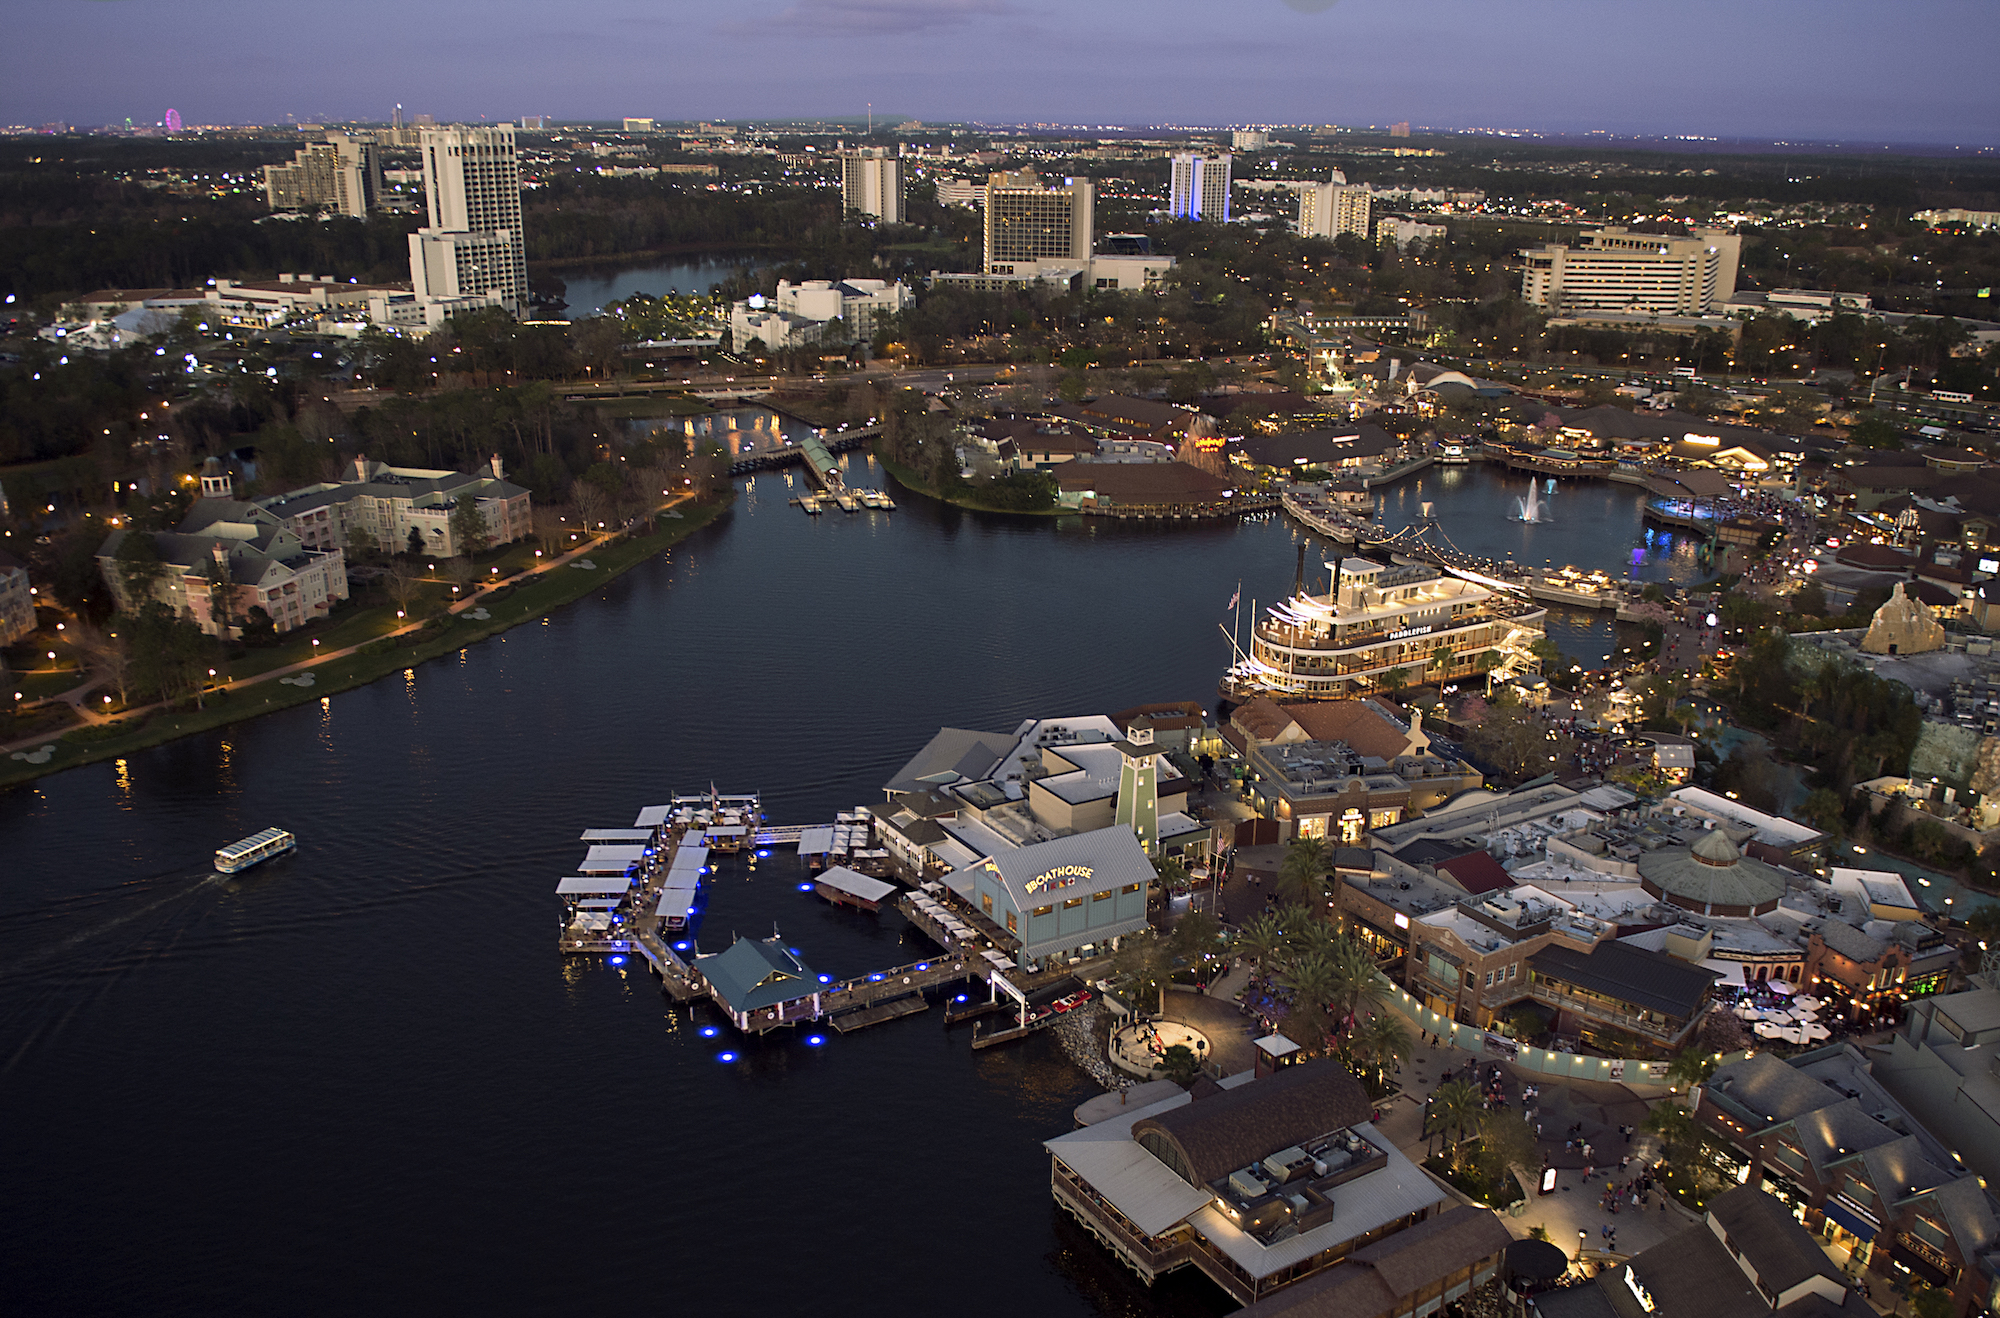 Disney Springs Resort Area Hotels to Continue Offering Select Disney Resort Hotel Benefits Throughout 2019